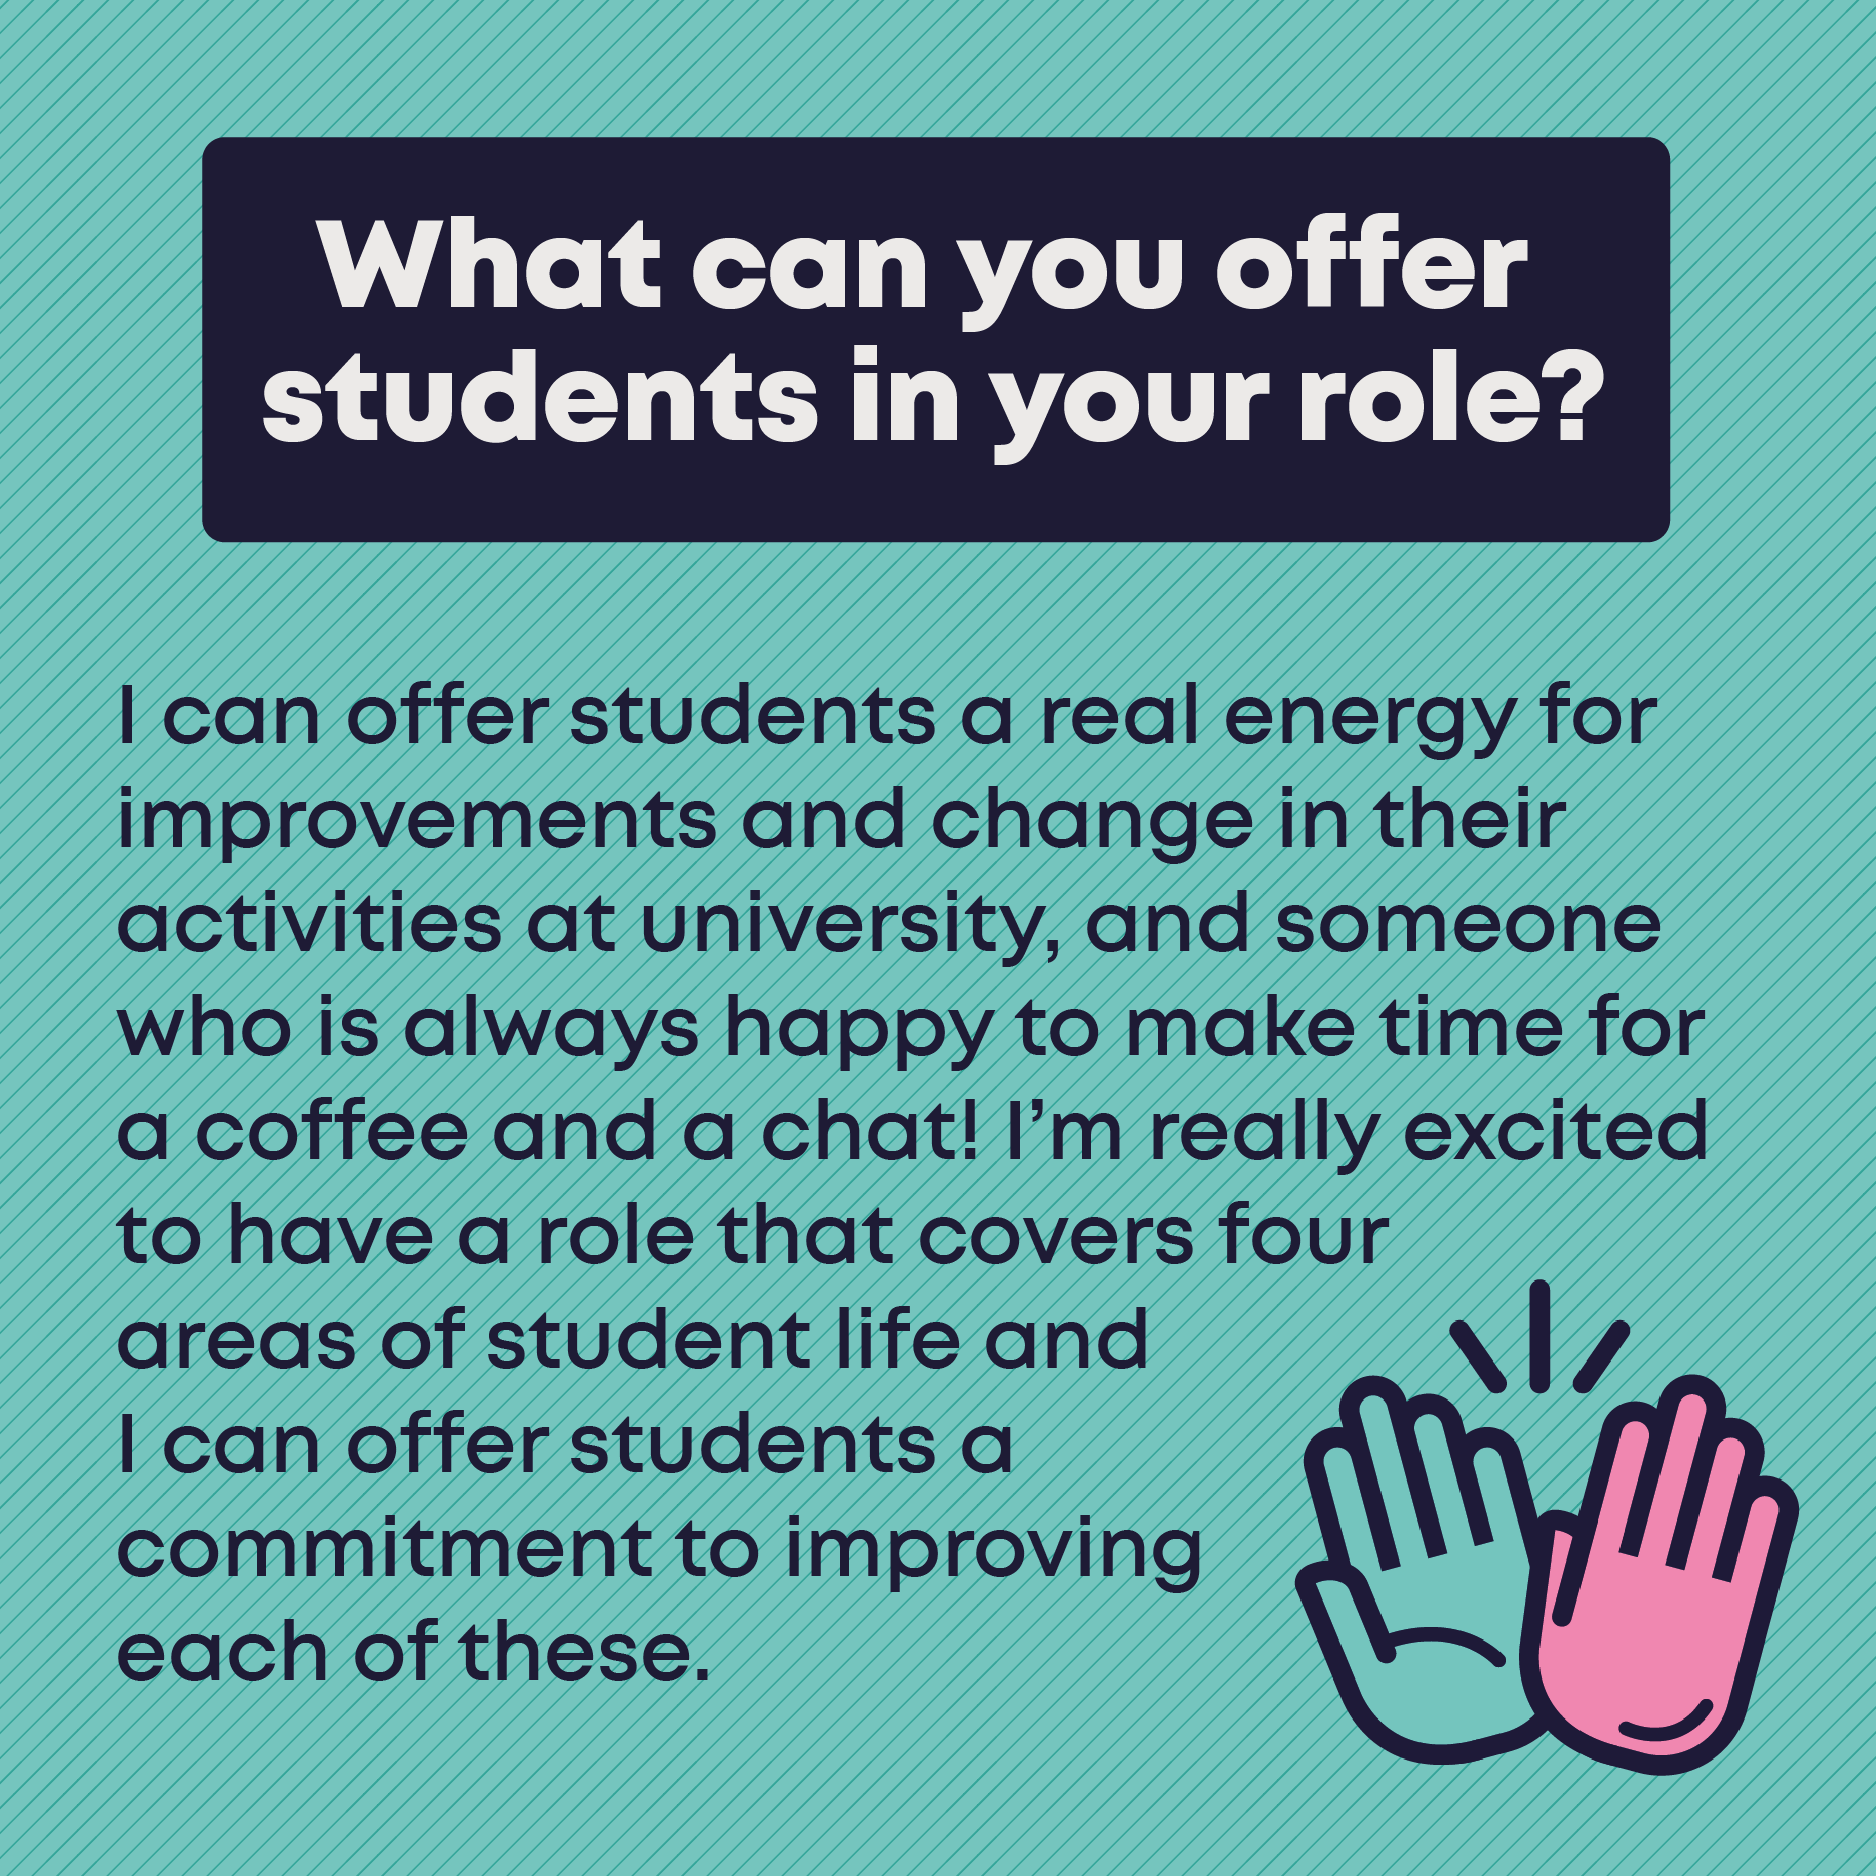 What can you offer students in your role? I can offer students a real energy for improvements and change in their activities at university, and someone who is always happy to make time for  a coffee and a chat! I'm really excited to have a role that covers four  areas of student life and I can offer students a commitment to improving each of these.